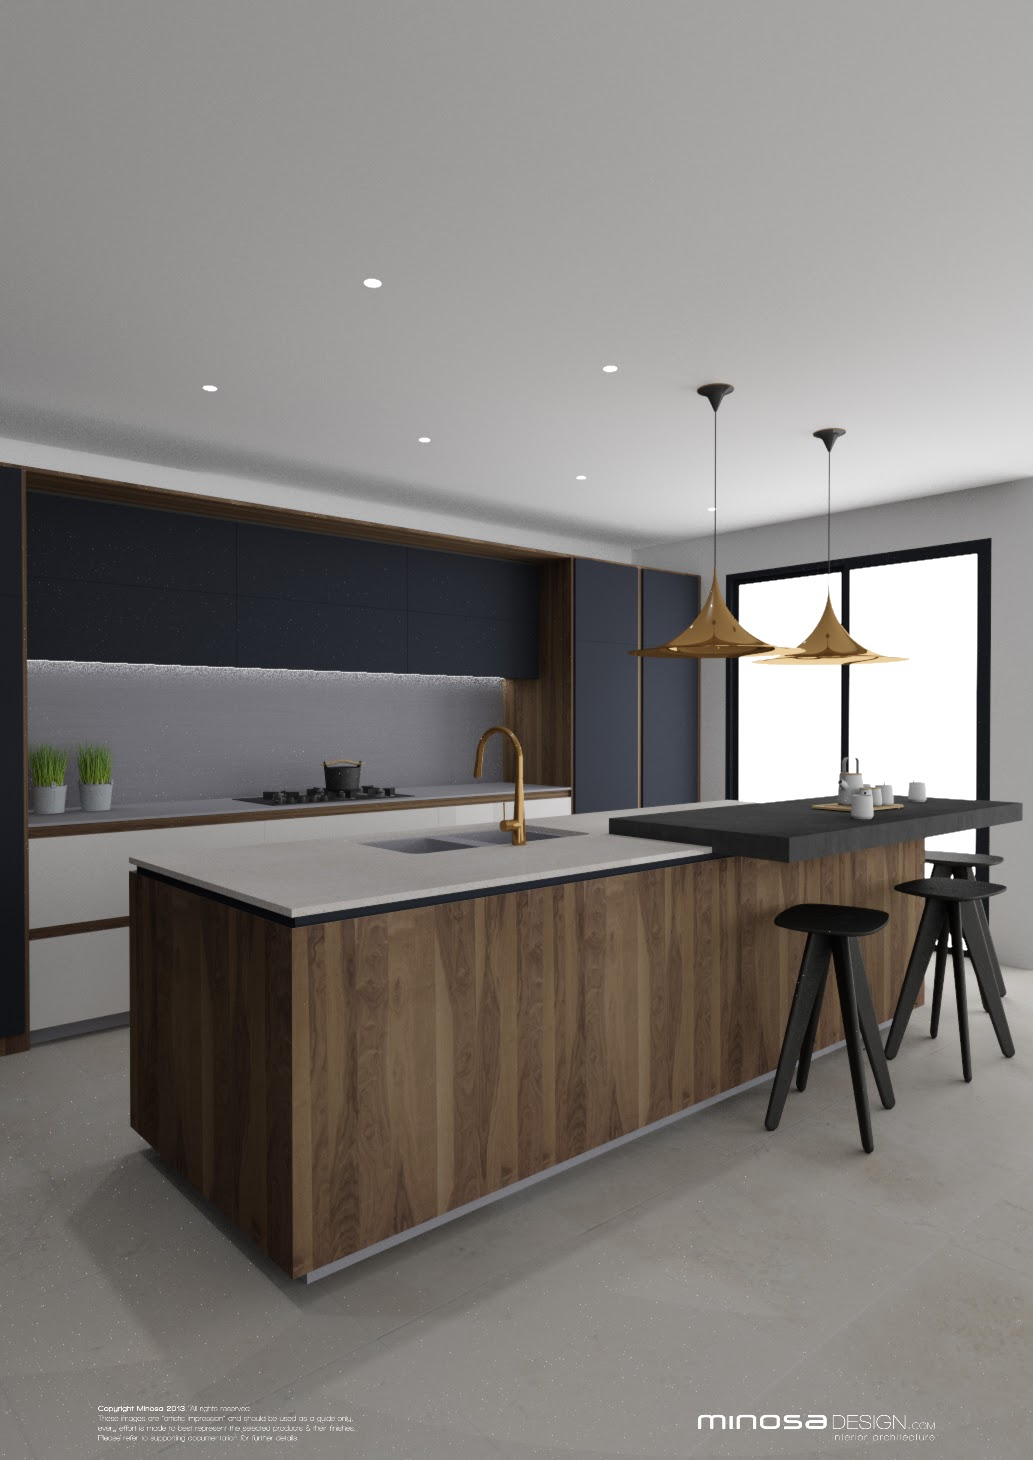 Minosa striking kitchen design with rich wood copper for Photos of new kitchen designs